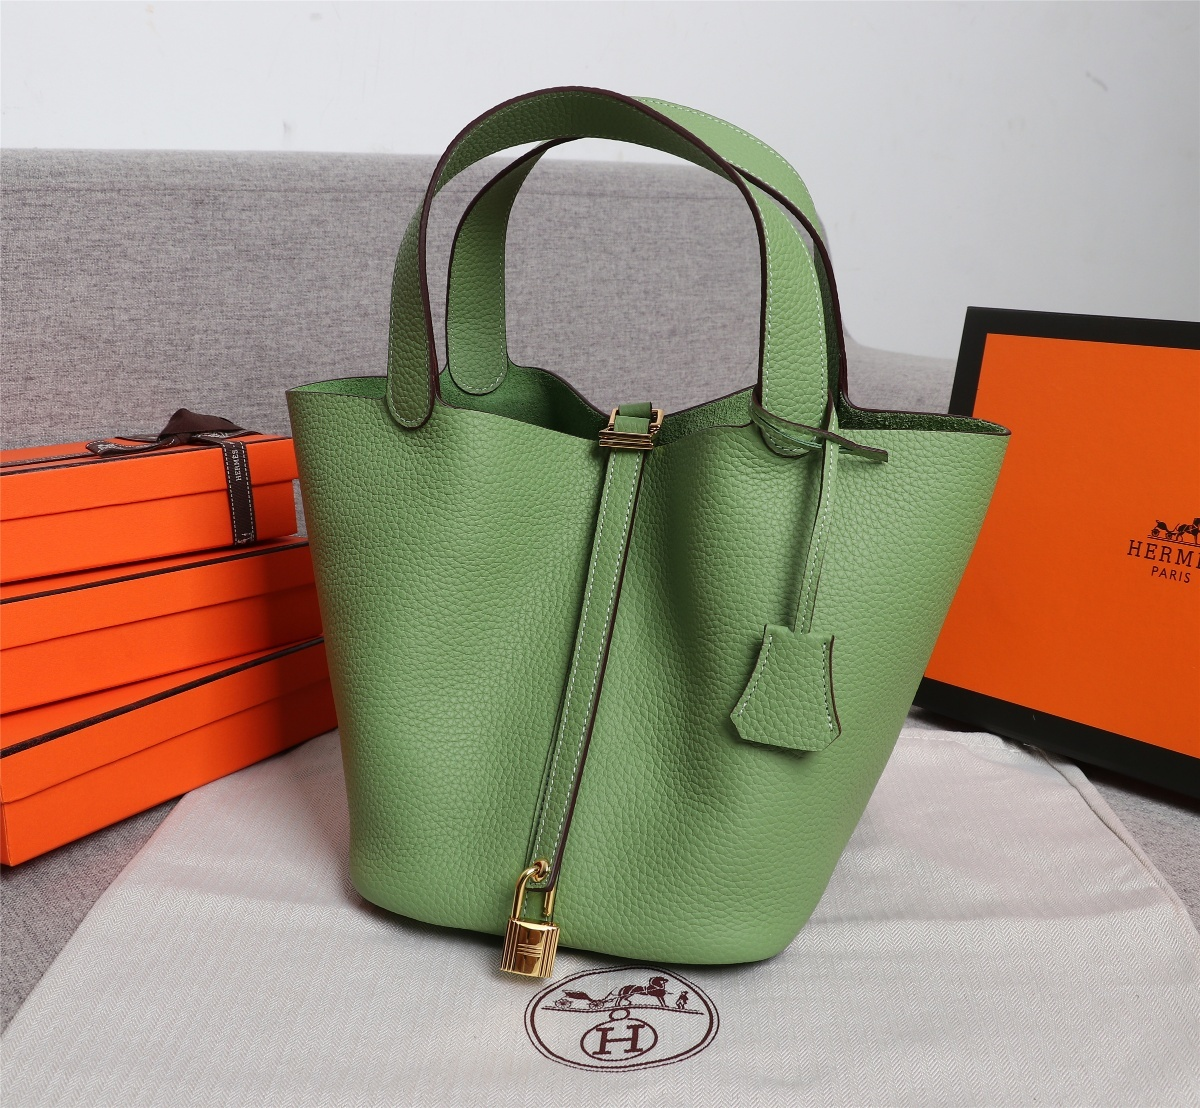 Replica Hermes Picotin Lock Bag 18cm and 22cm Green with Gold Hardware